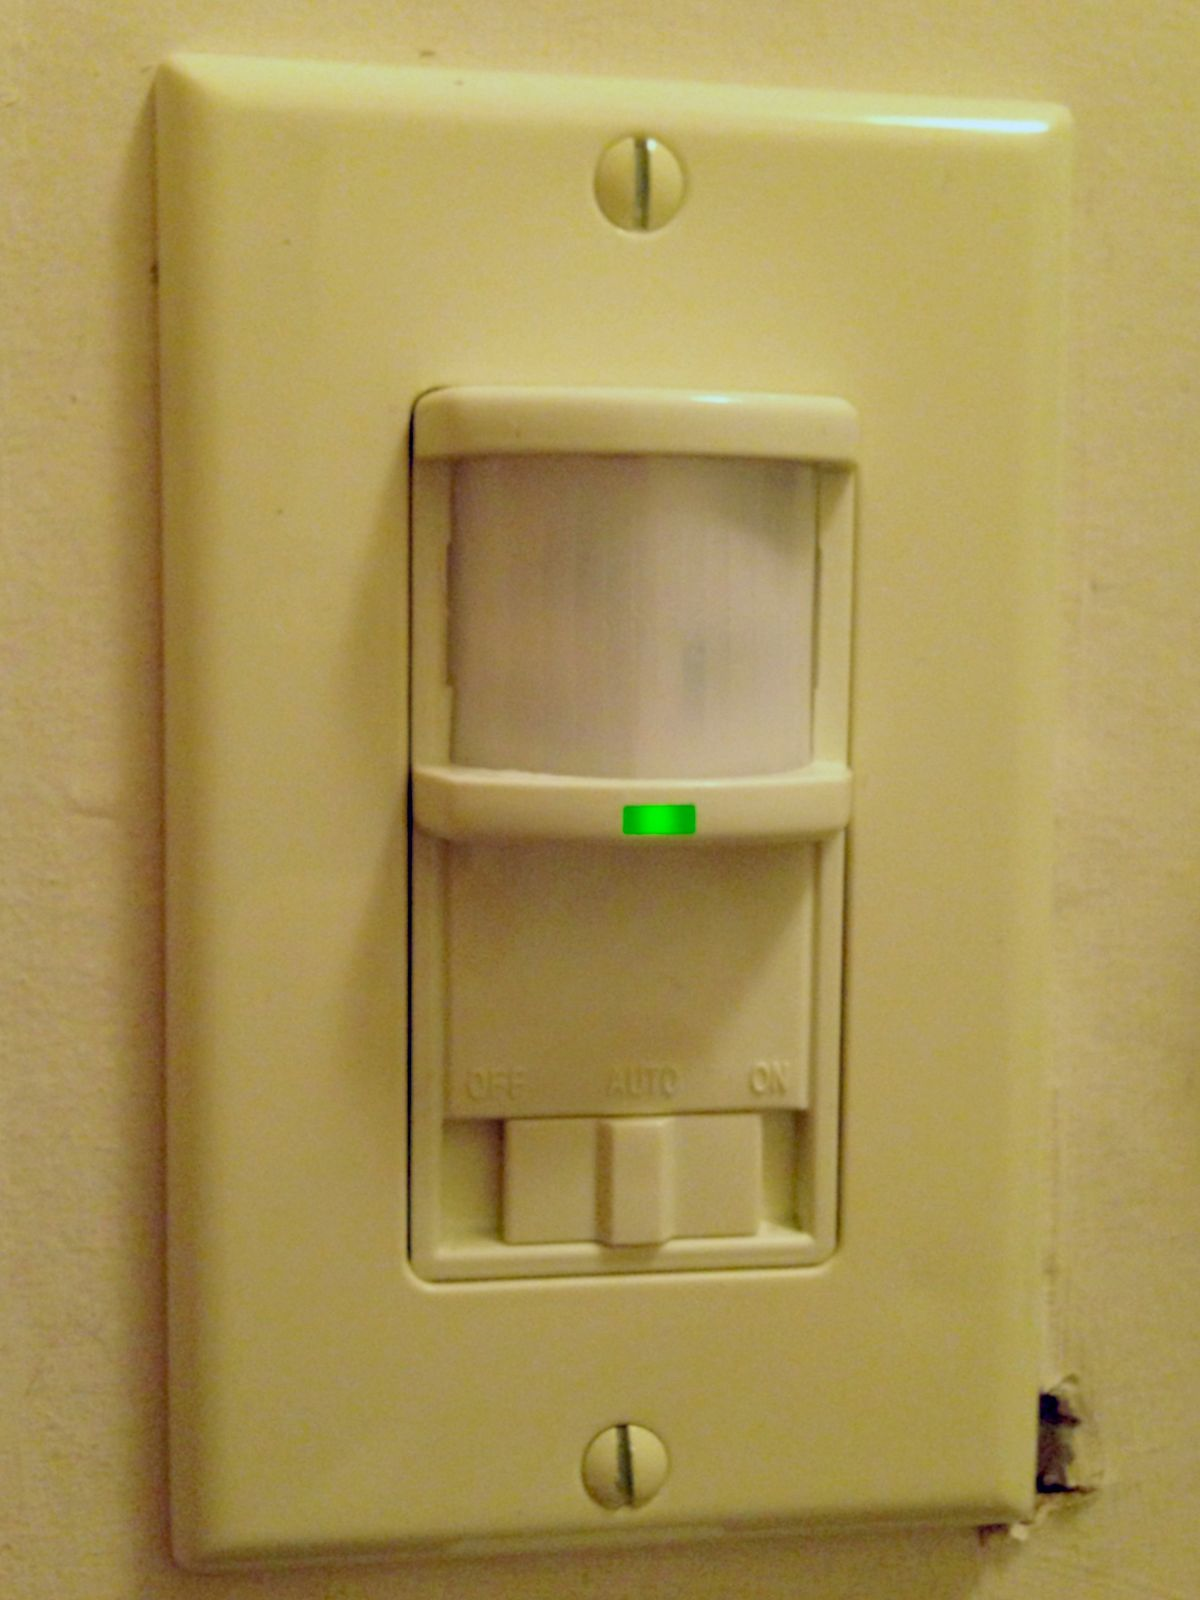 Occupancy Sensor Wikipedia